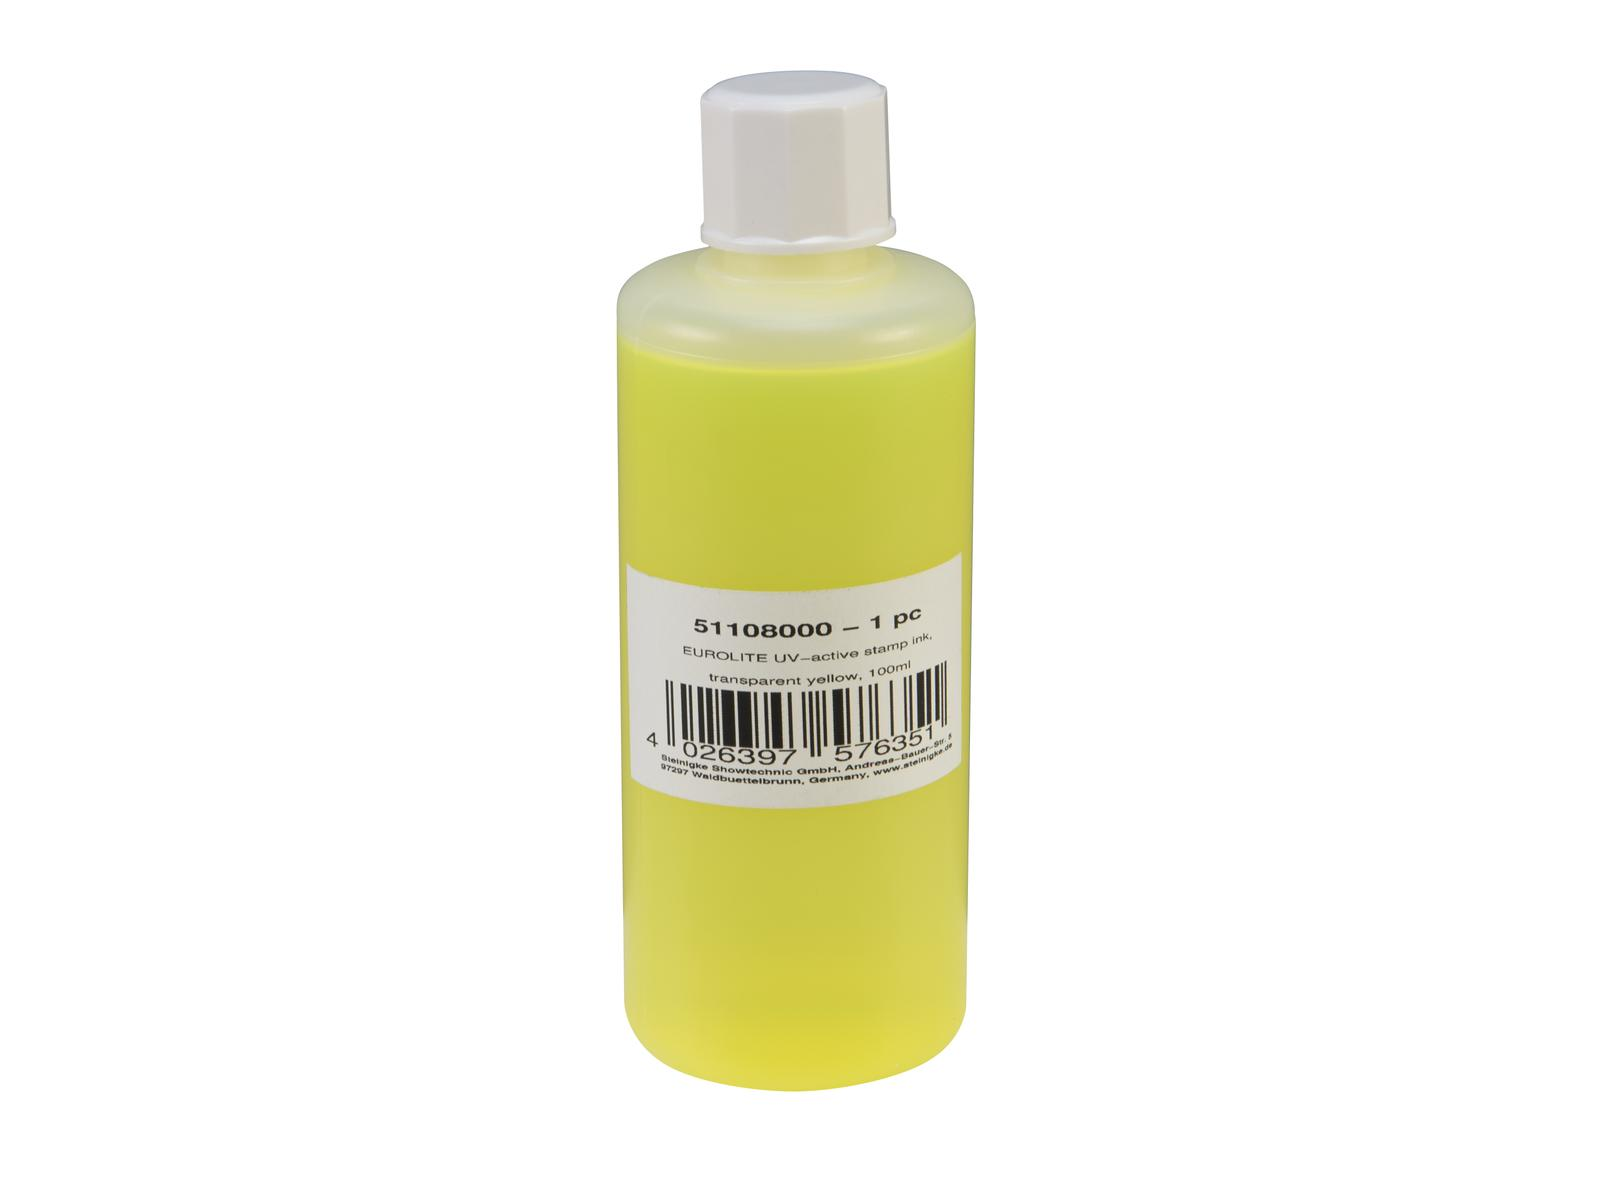 EUROLITE UV-aktive Stempelfarbe, transparent gelb, 100ml